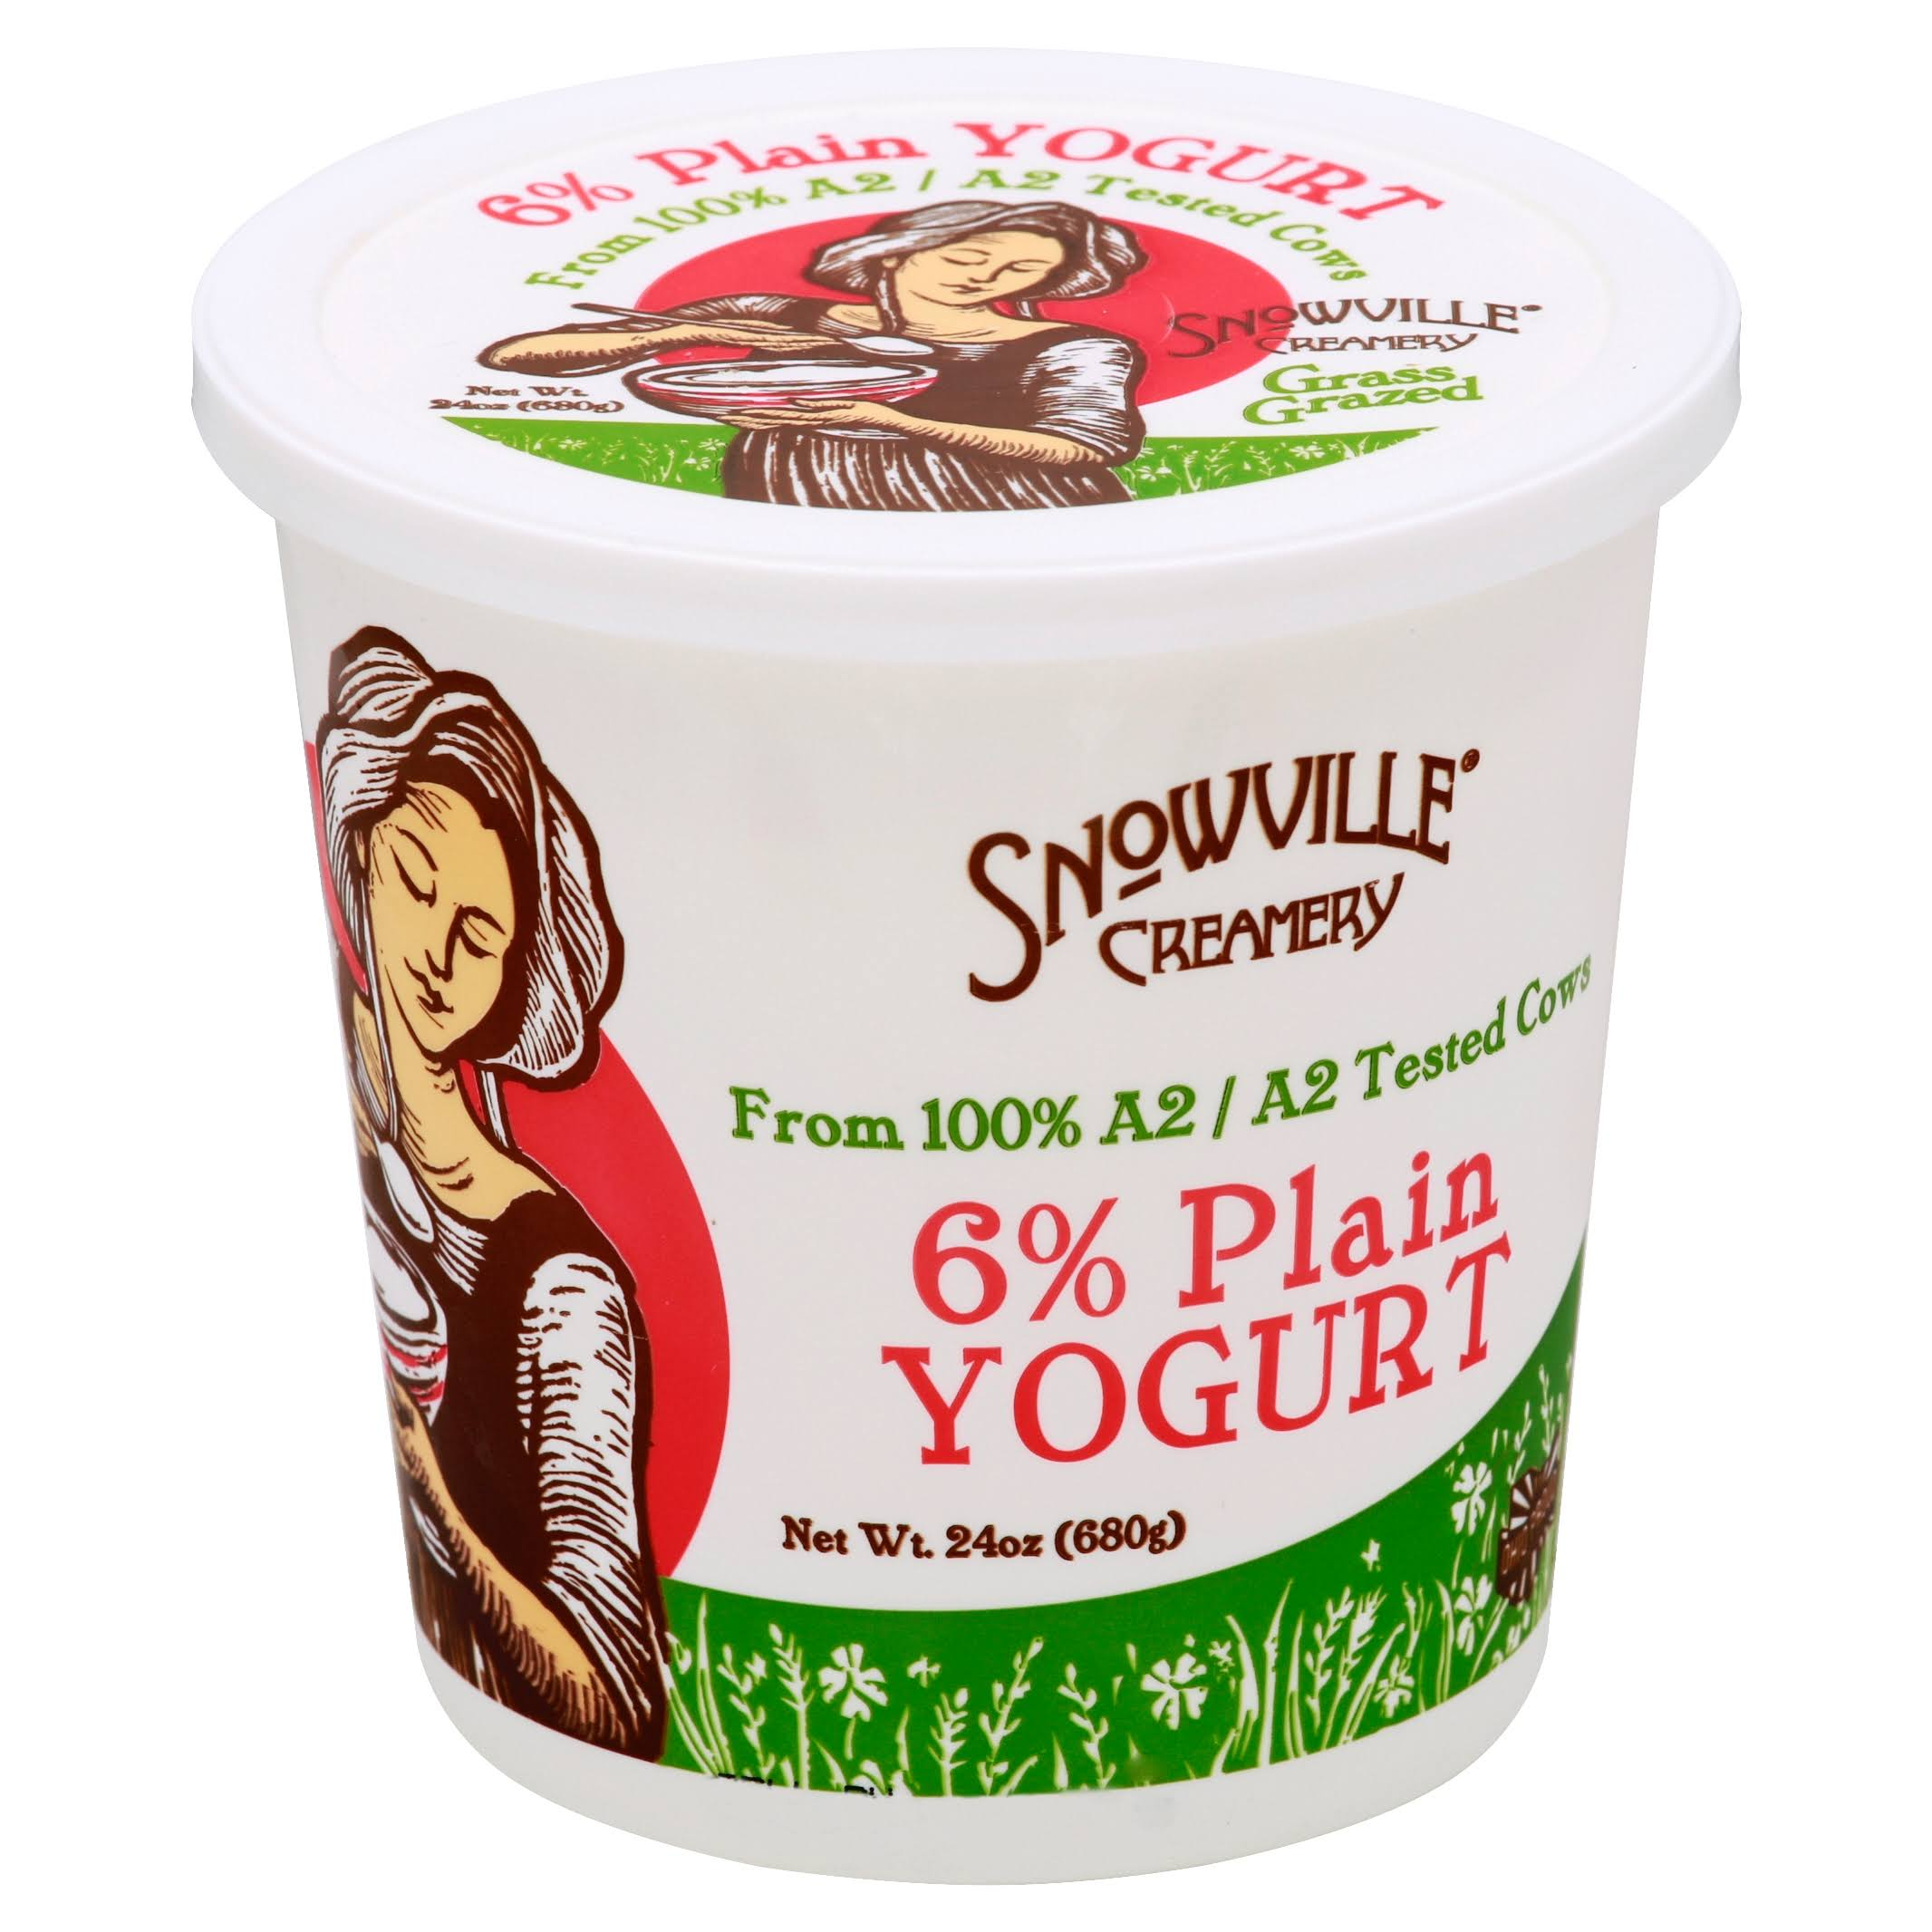 Snowville Creamery Yogurt, 6% Plain - 24 oz